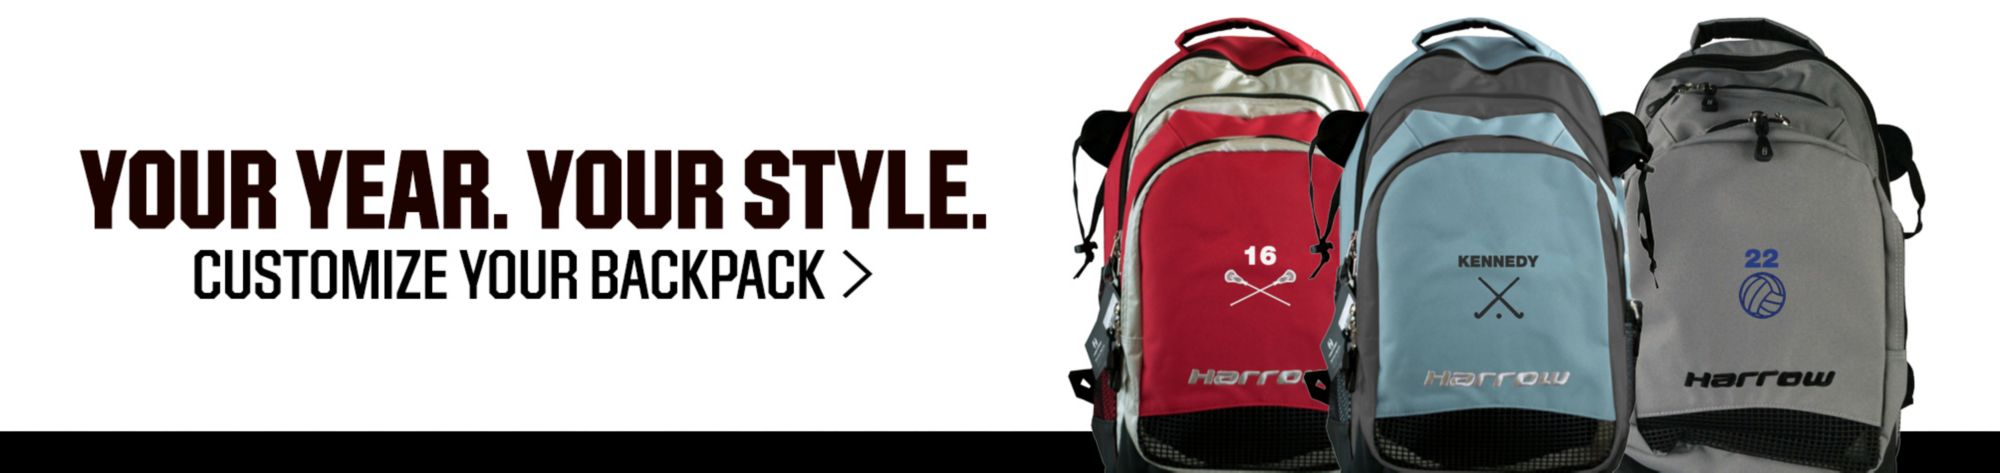 Your year. Your style. Customize your backpack >